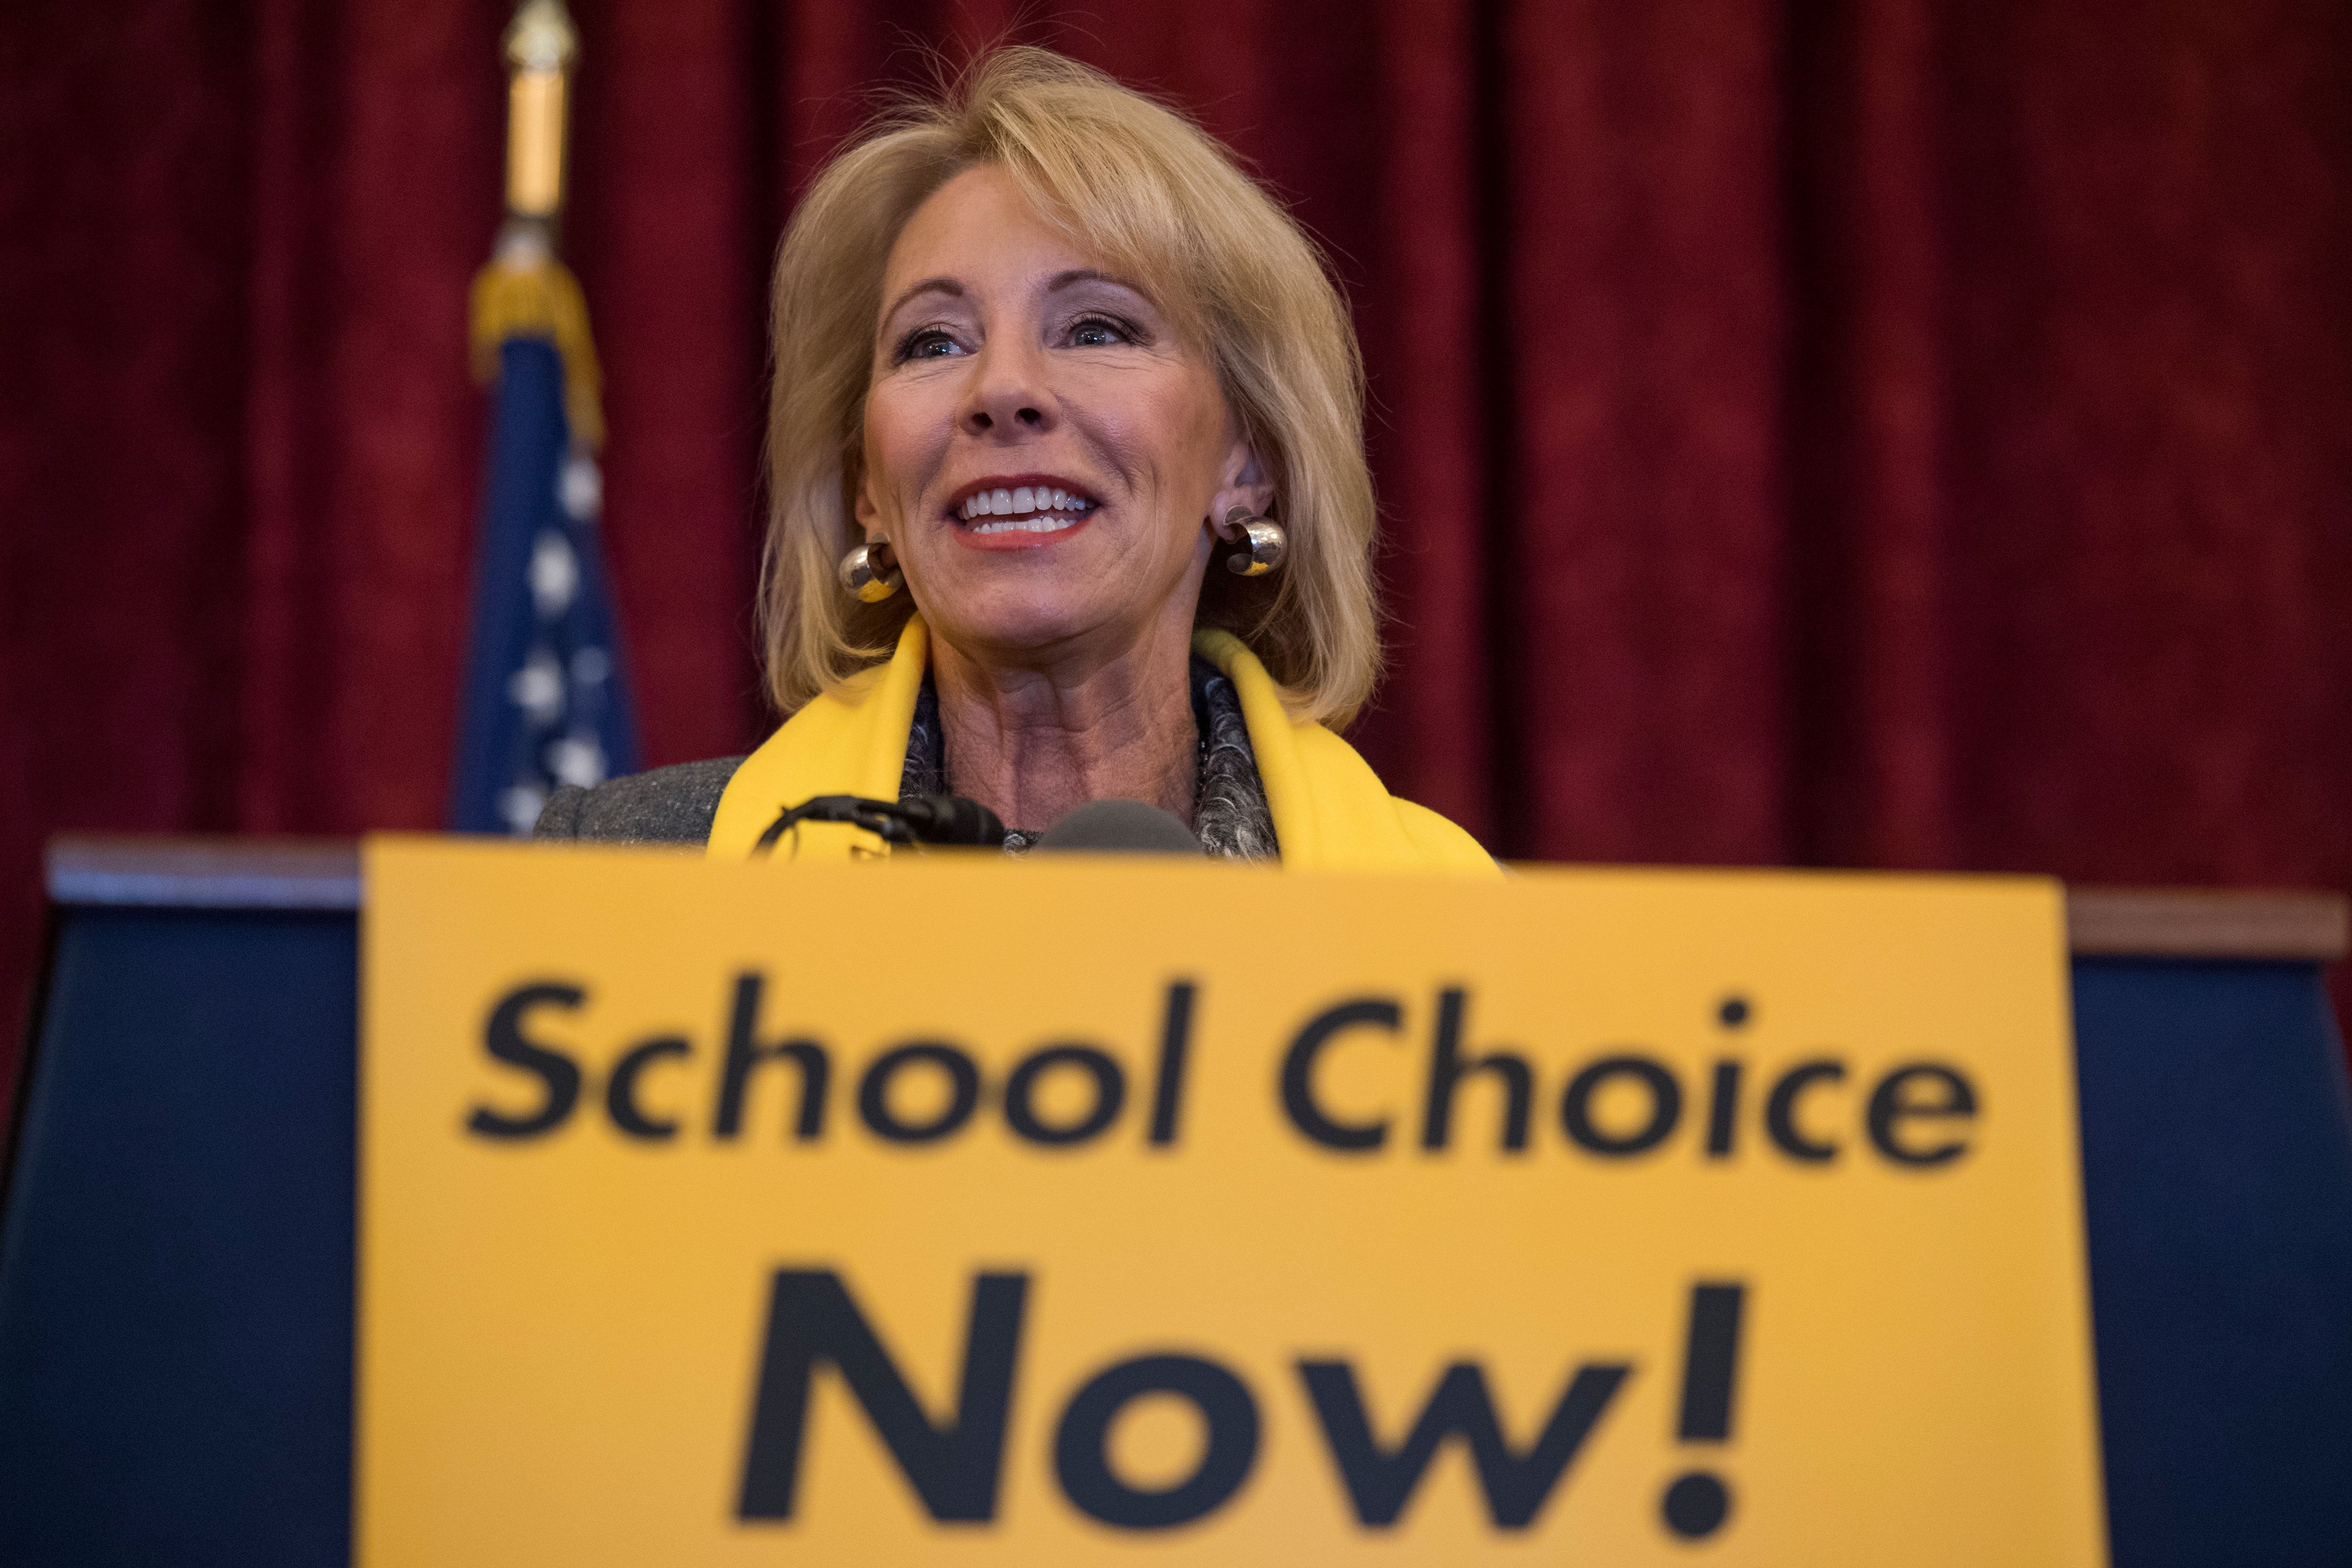 UNITED STATES - JANUARY 18: Education Secretary Betsy DeVos during a rally to promote the importance of school choice as part of 'National School Choice Week,' in Russell Building on January 18, 2018. (Photo By Tom Williams/CQ Roll Call)